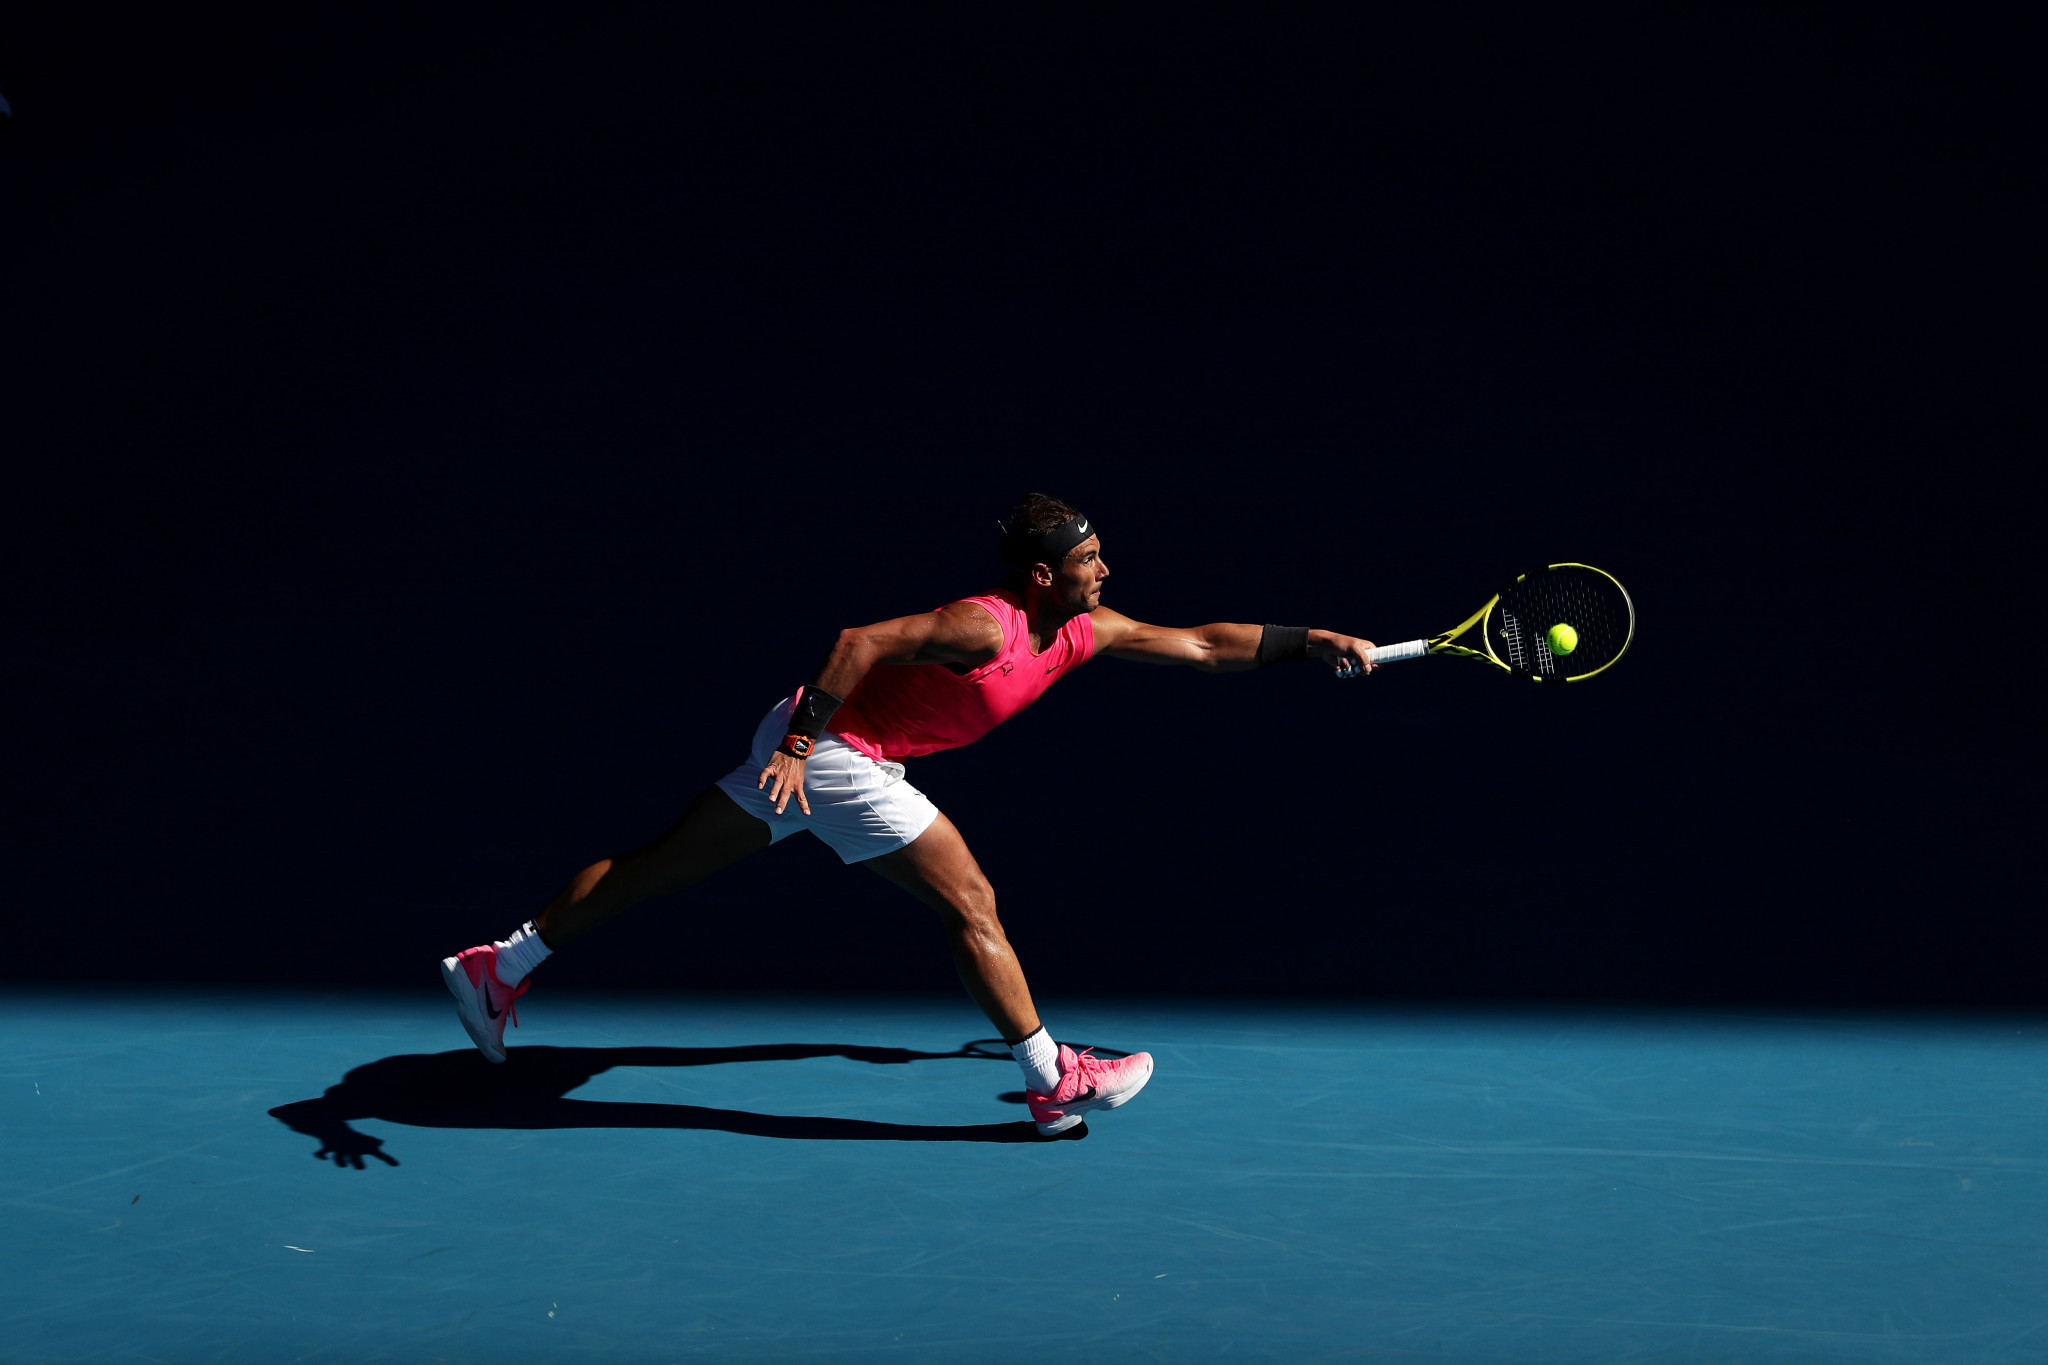 He will come up against foe Rafael Nadal next, with the Spaniard seeking his second Australian Open title ©Getty Images